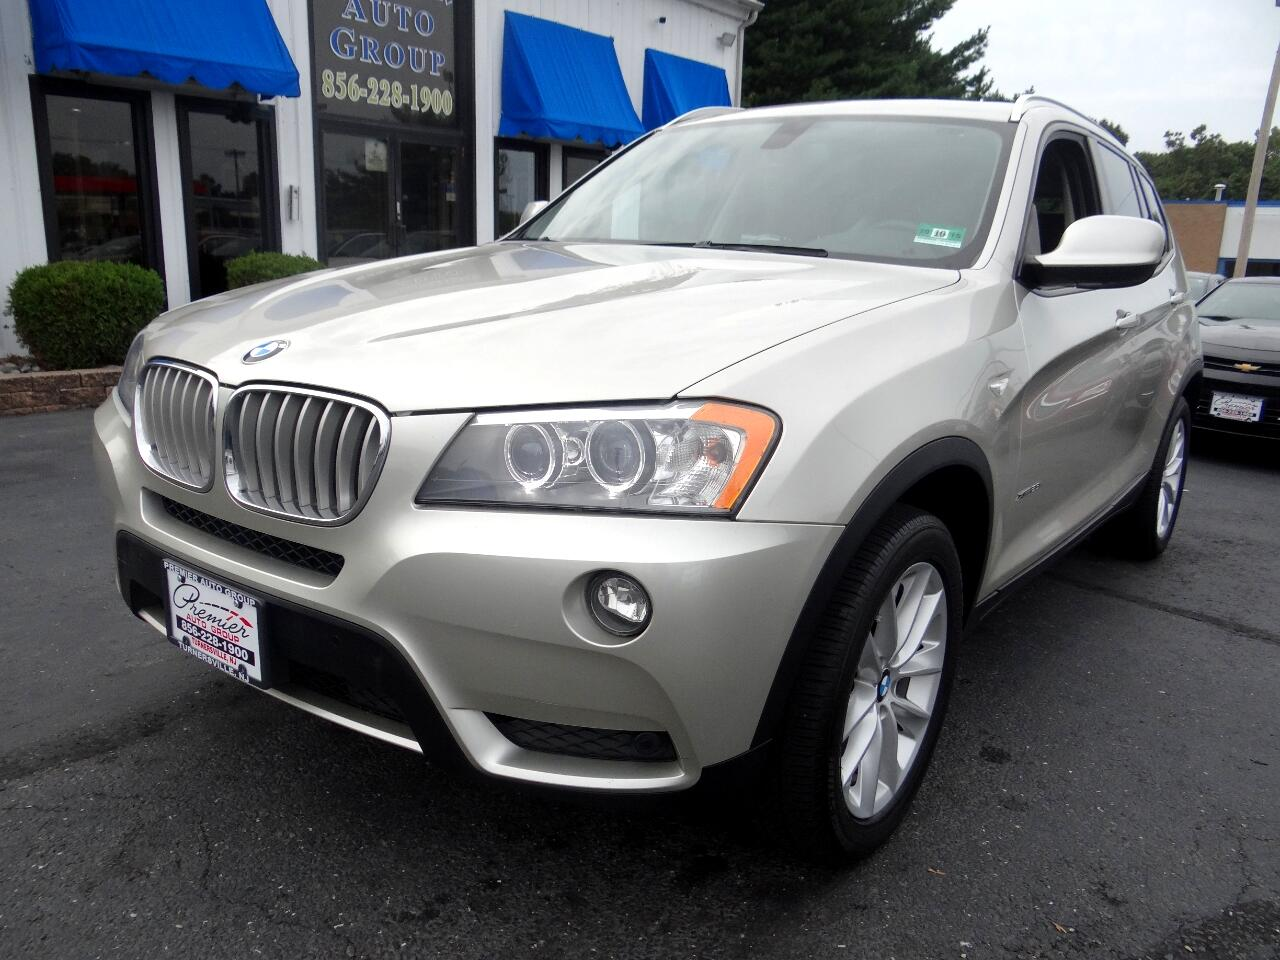 BMW X3 AWD 4dr xDrive28i 2013